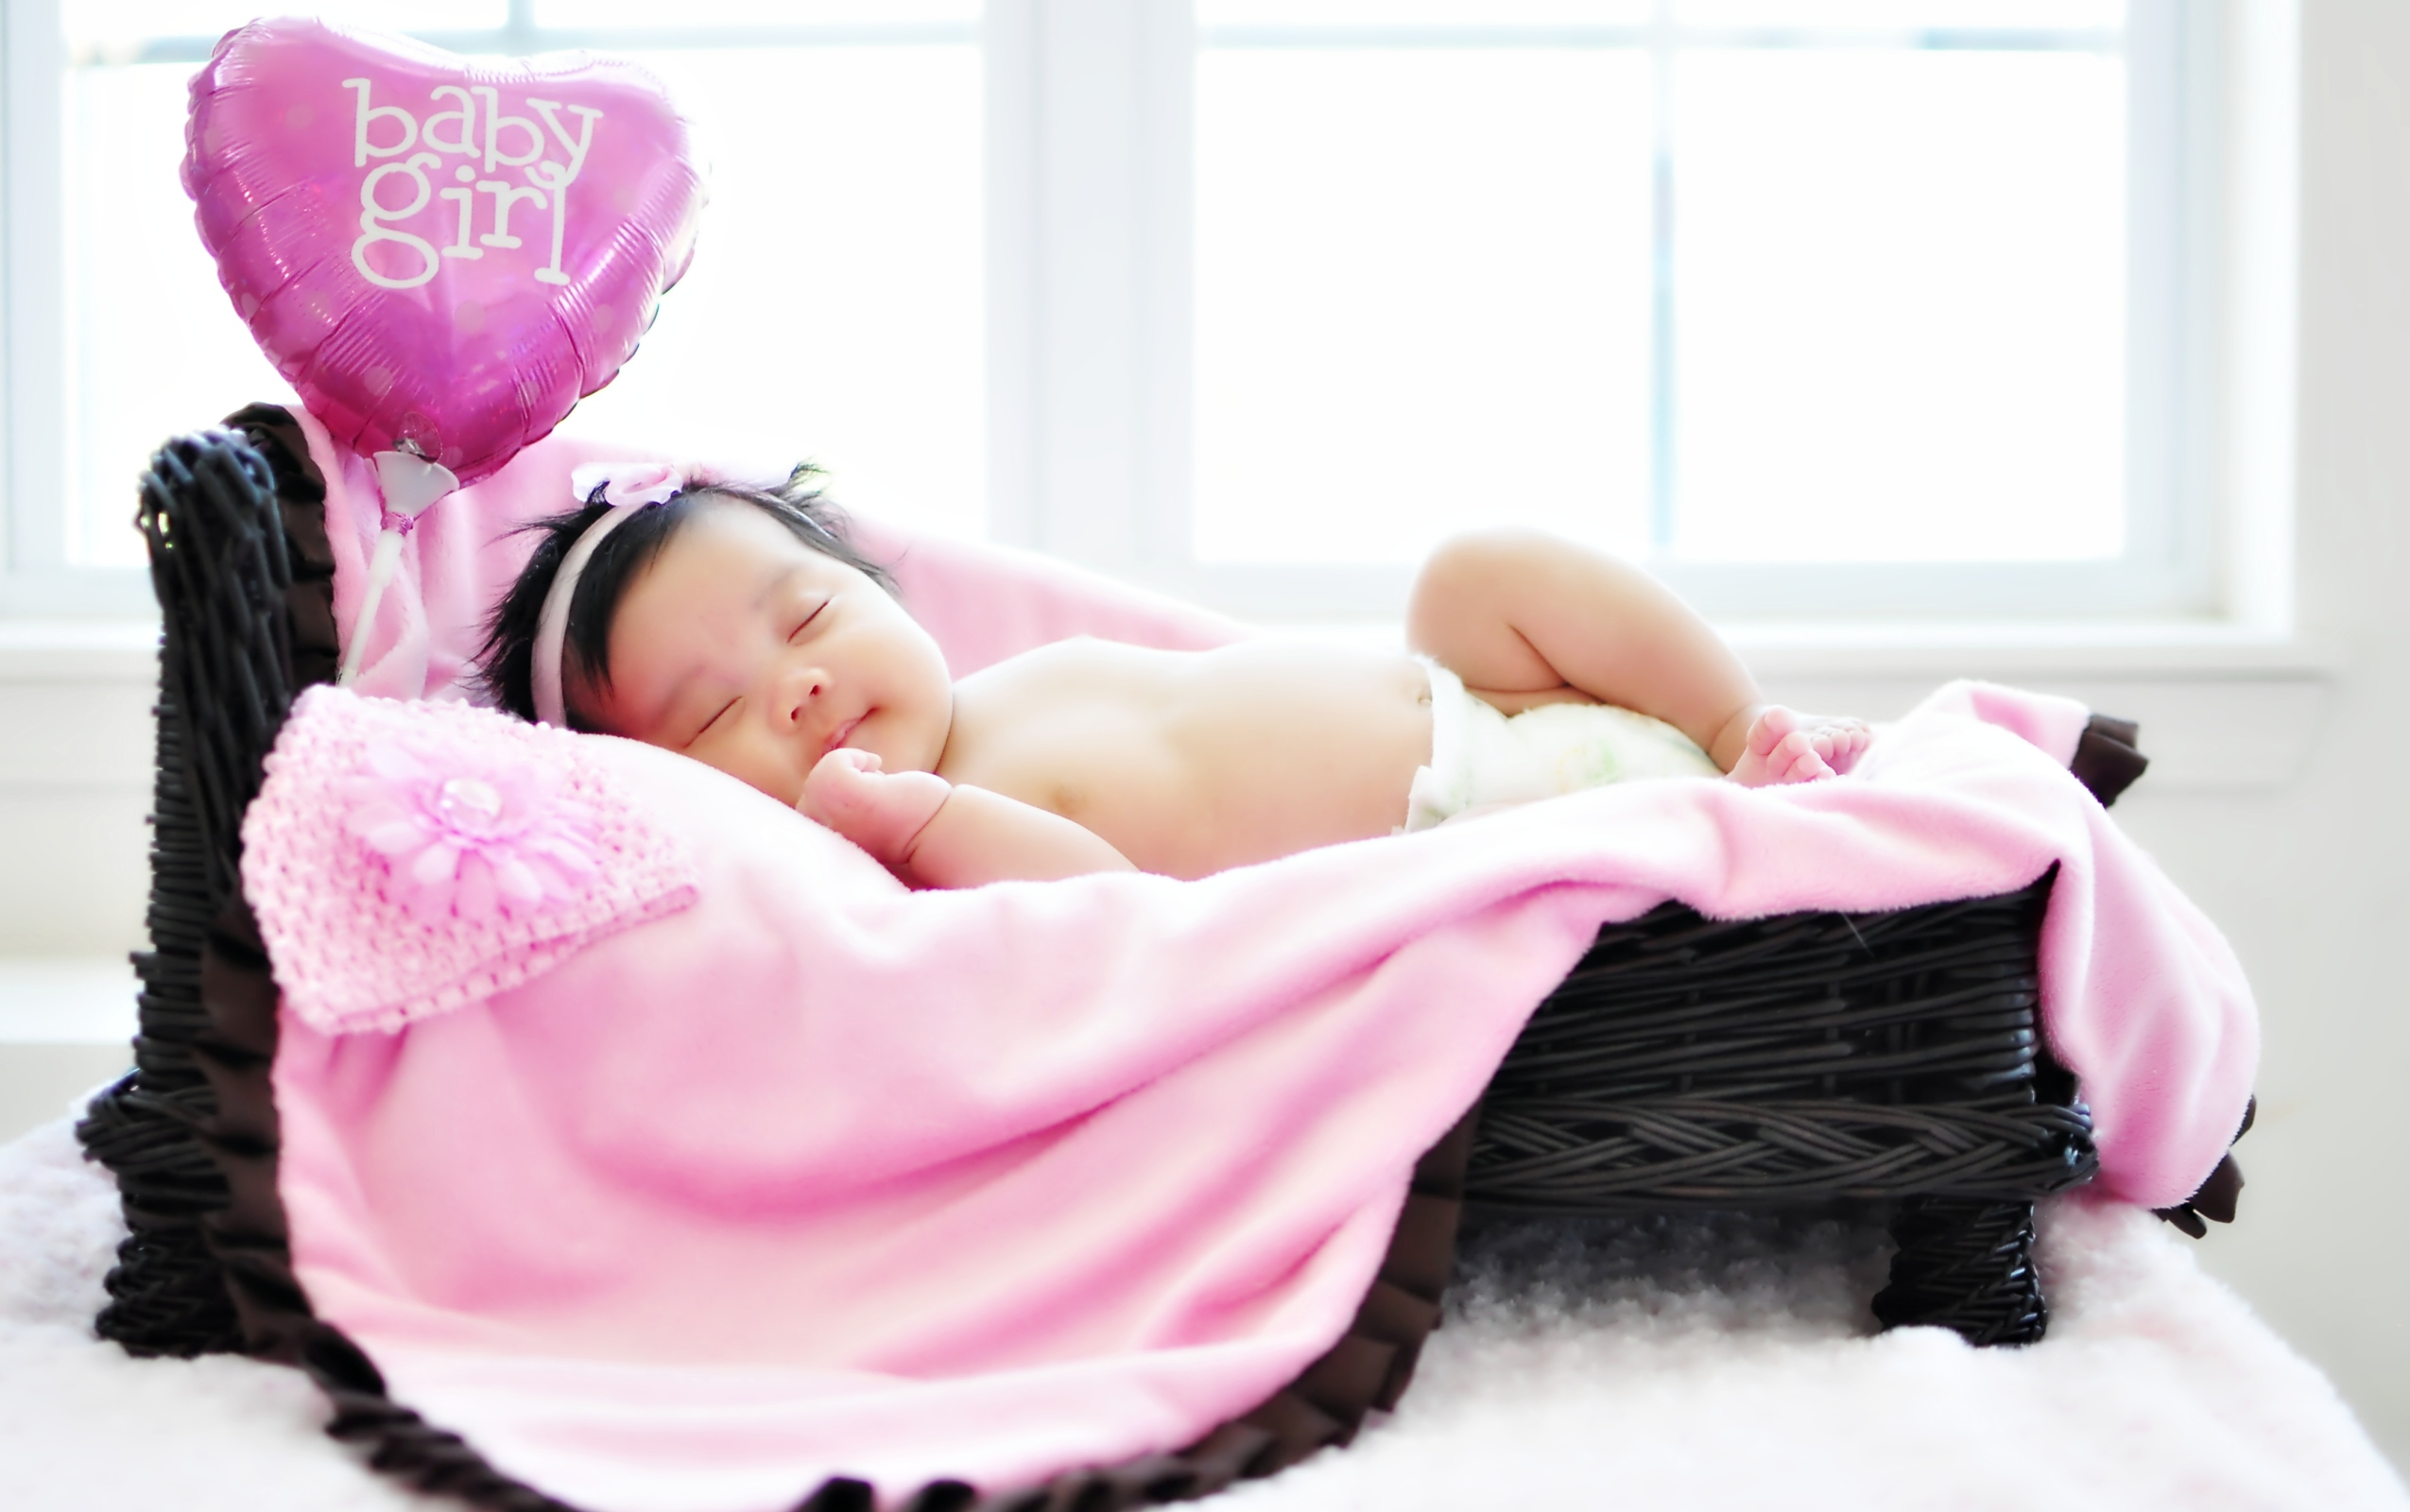 Little girl sleeping with pink heart wallpapers 2550x1600 689679 little girl sleeping with pink heart 2550 x 1600 download close voltagebd Image collections